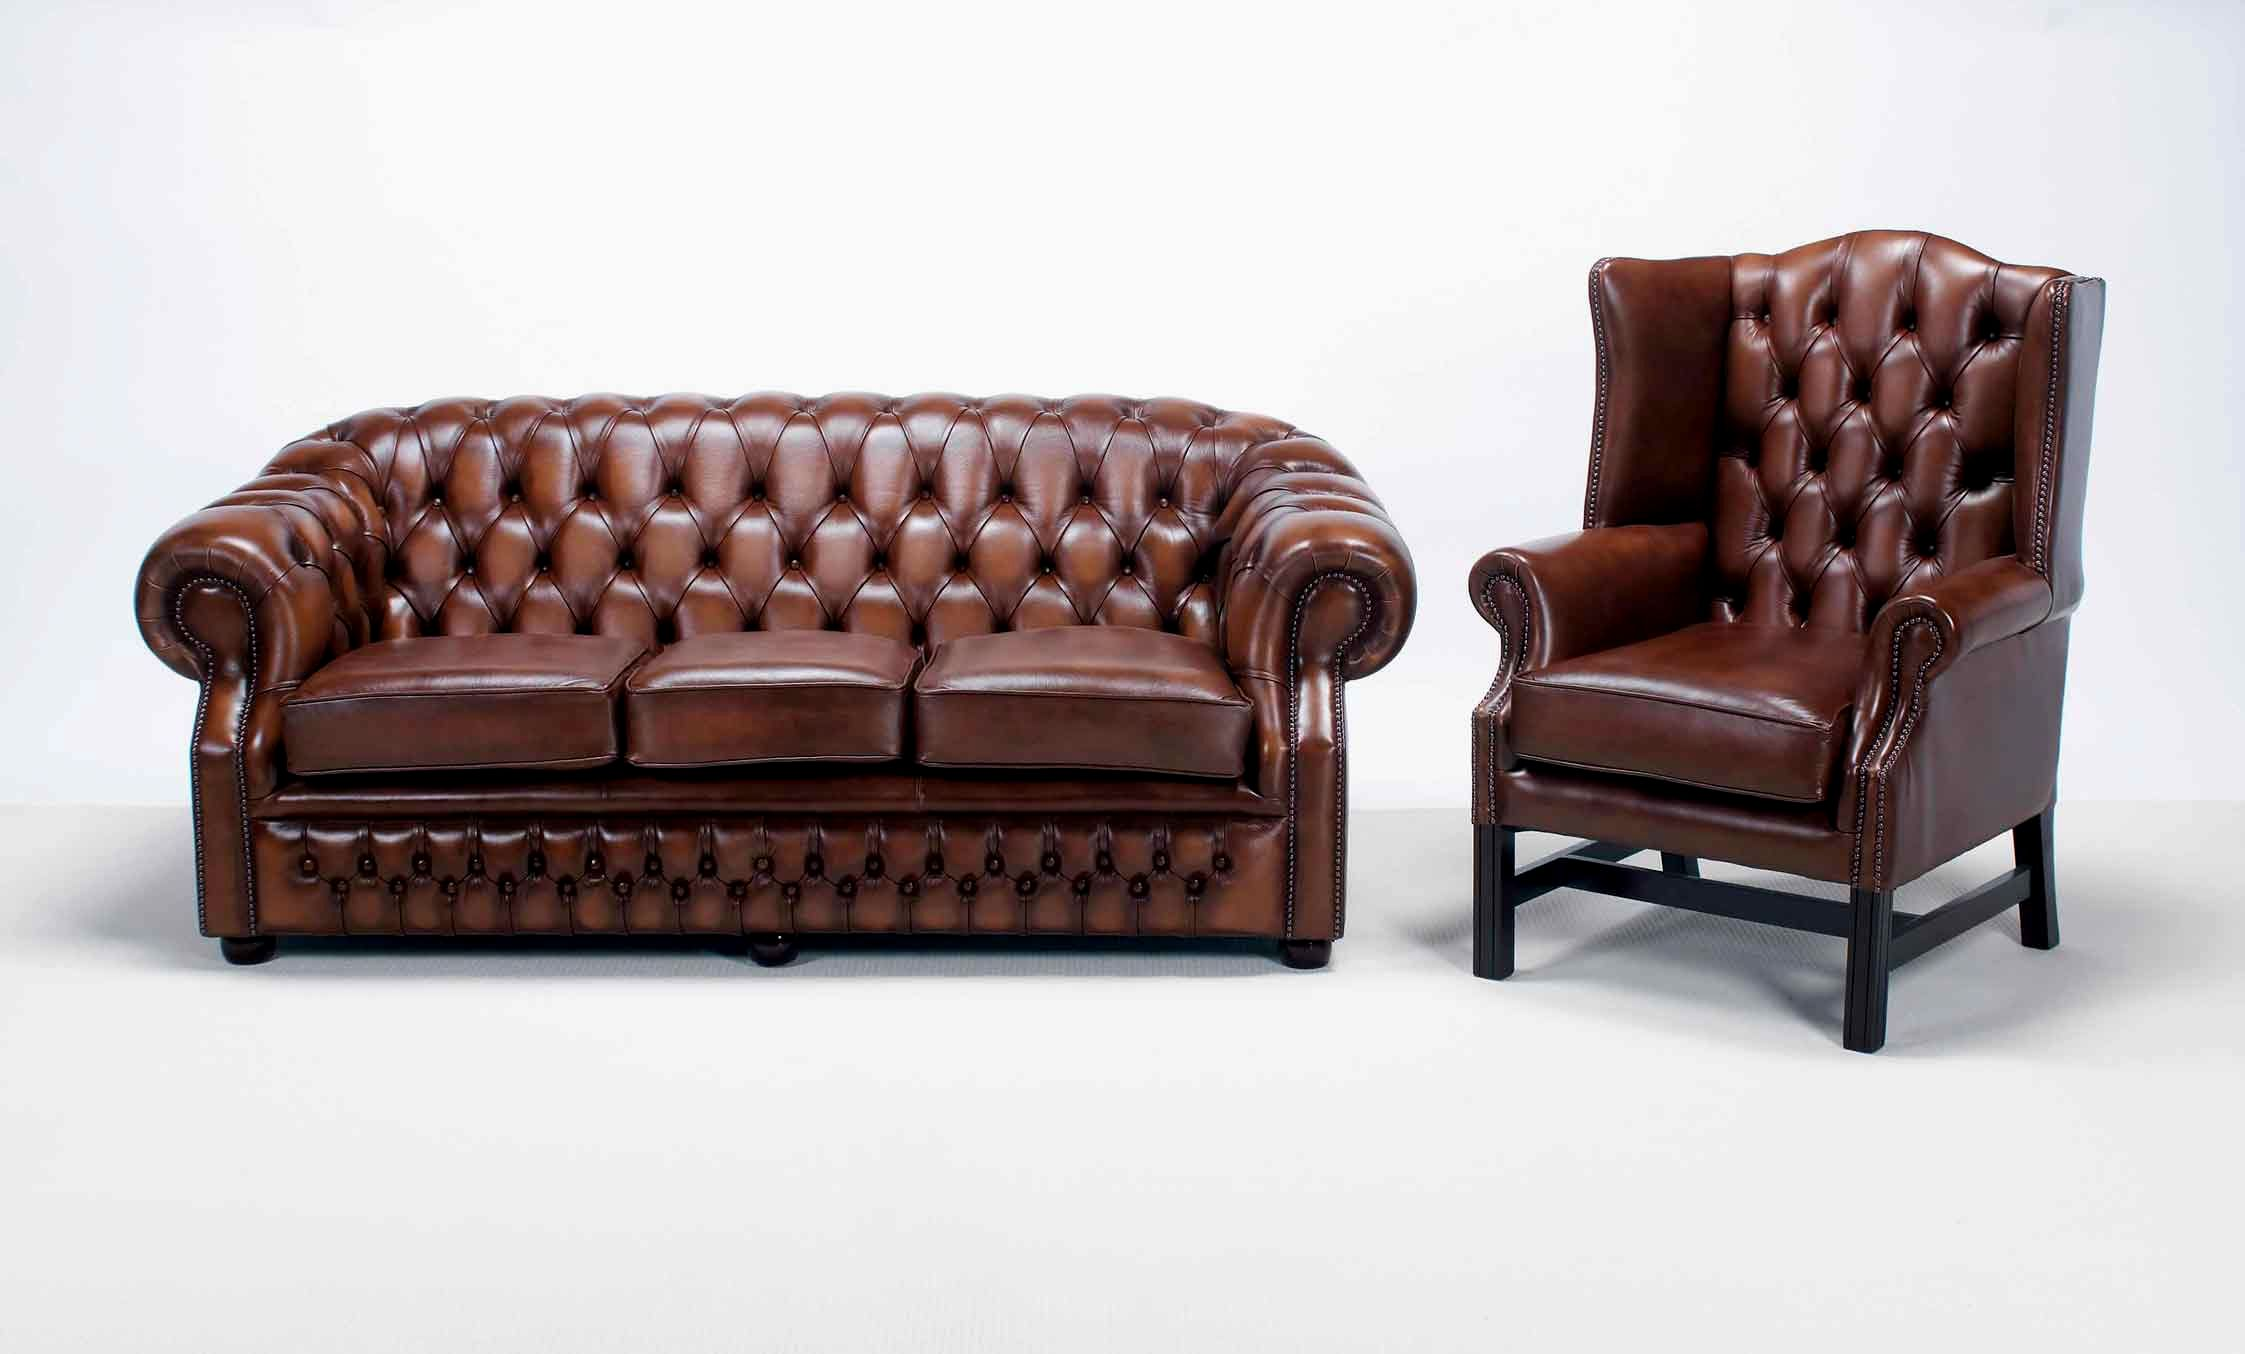 unique chesterfield sofa leather gallery-Lovely Chesterfield sofa Leather Concept